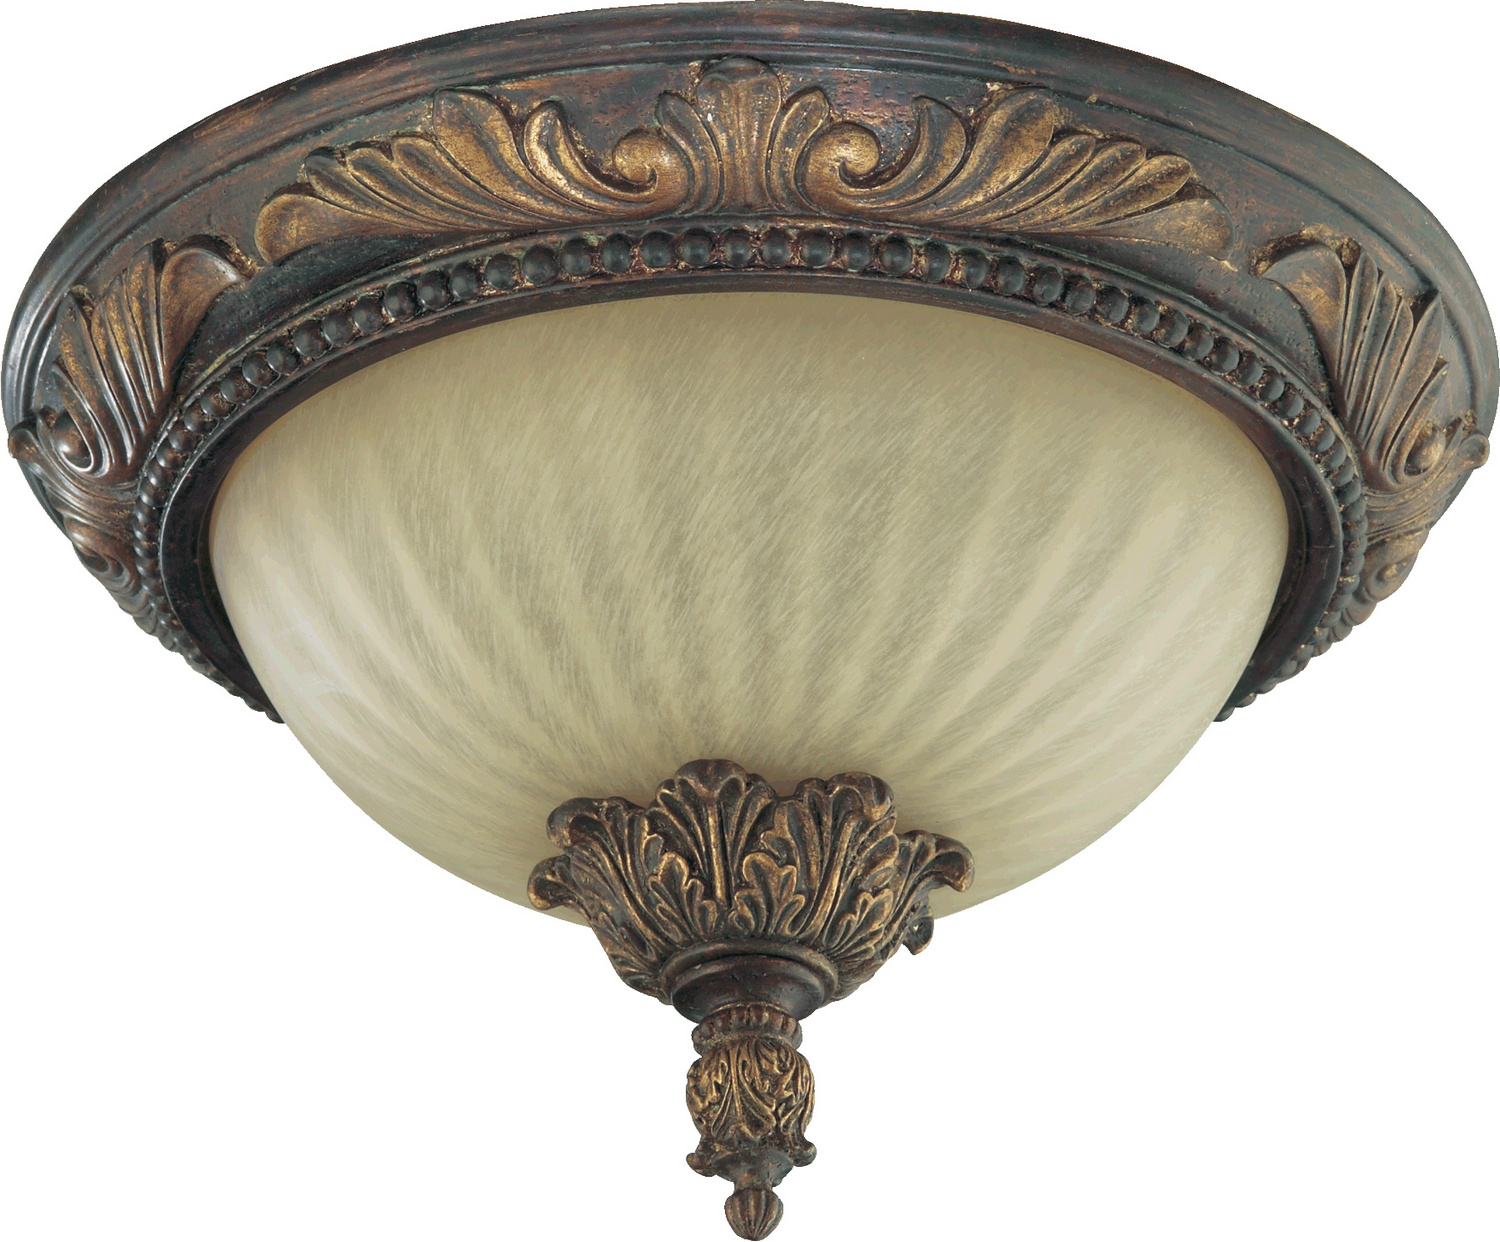 Madeleine ceiling light fixture by quorum